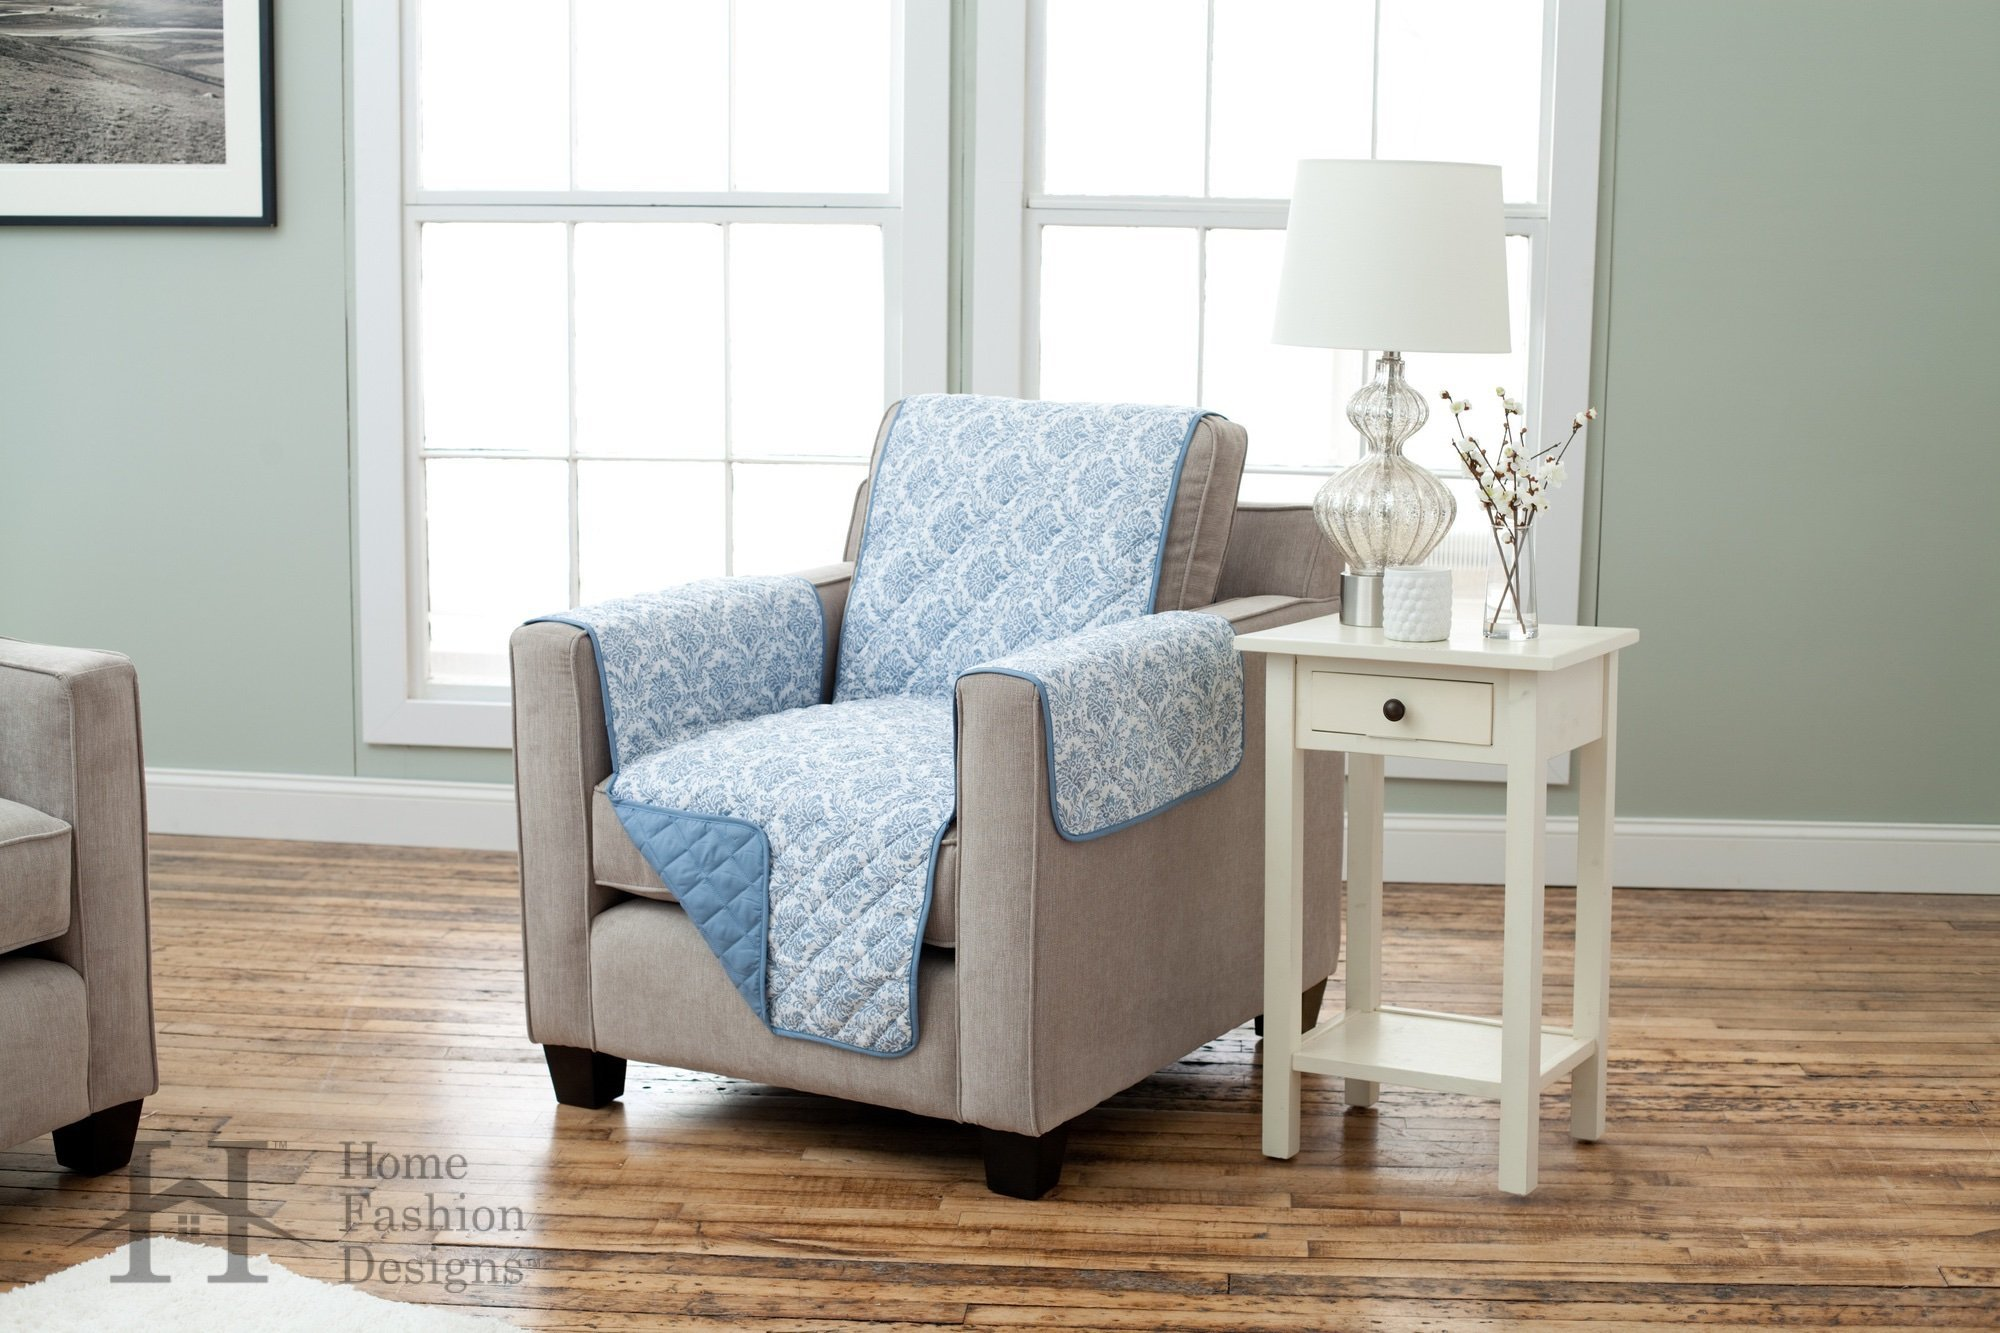 Home Fashion Designs Deluxe Reversible Quilted Furniture Protector. Beautiful Print on One Side/Solid Color on The Other for Two Fresh Looks. Luxe Collection Brand. (Chair, Harbor Blue)